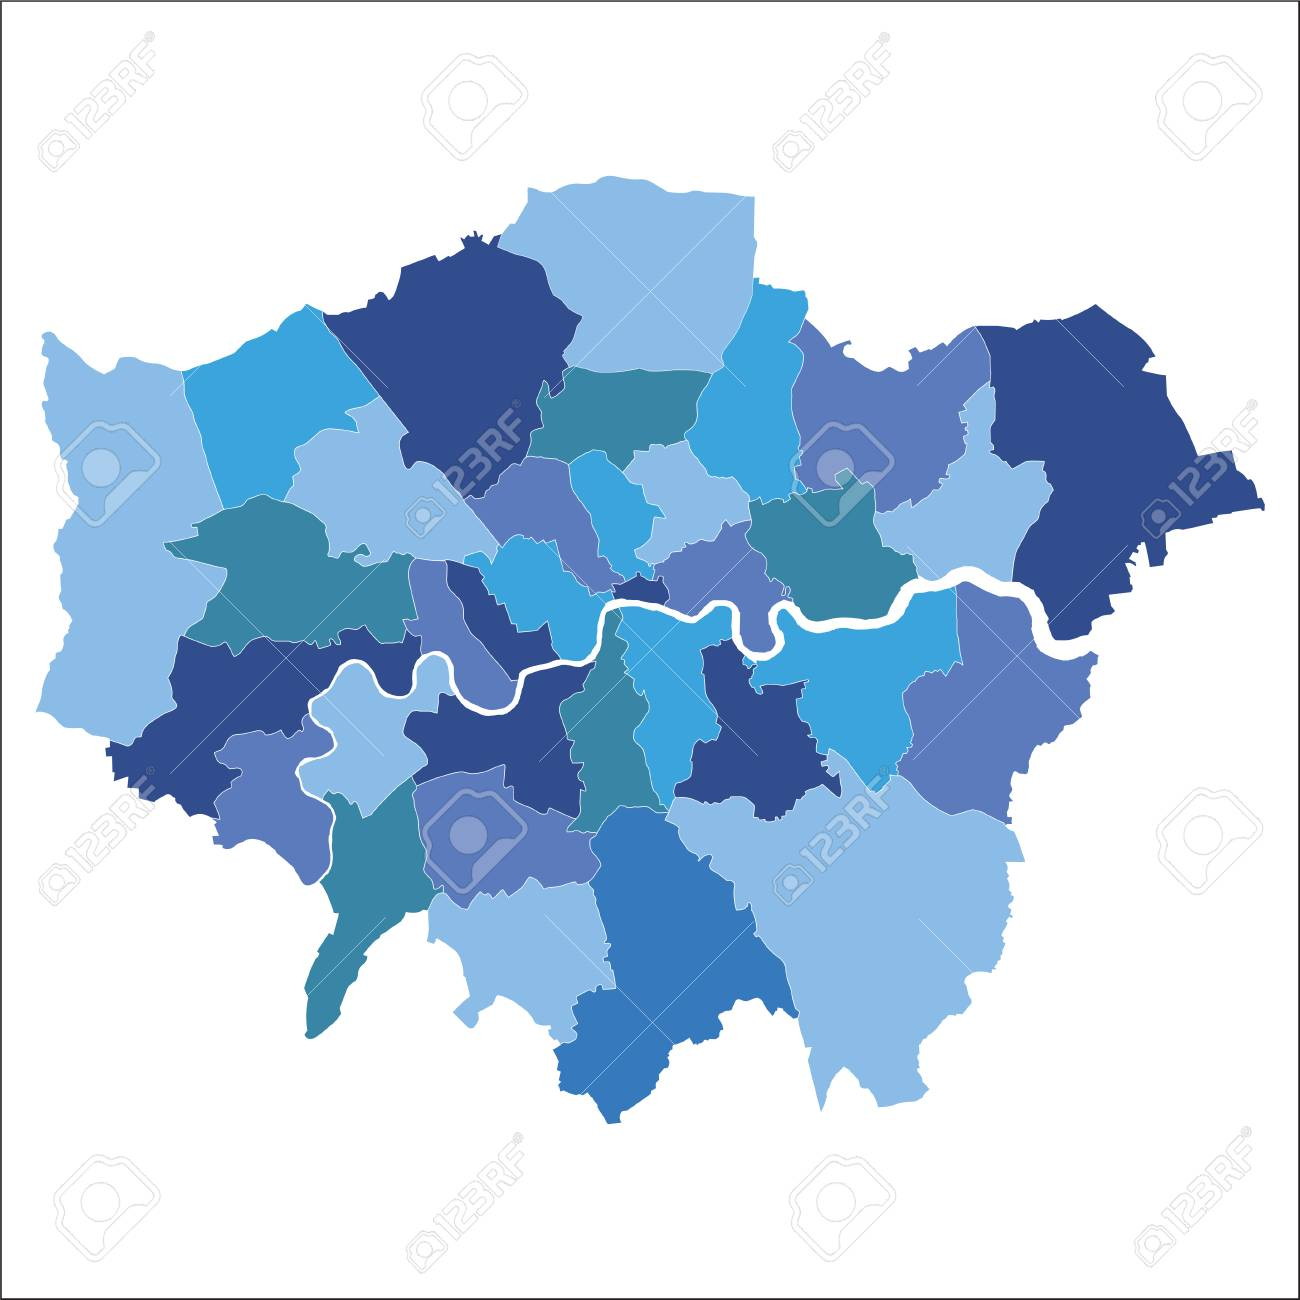 Greater London map showing all boroughs - 92940605